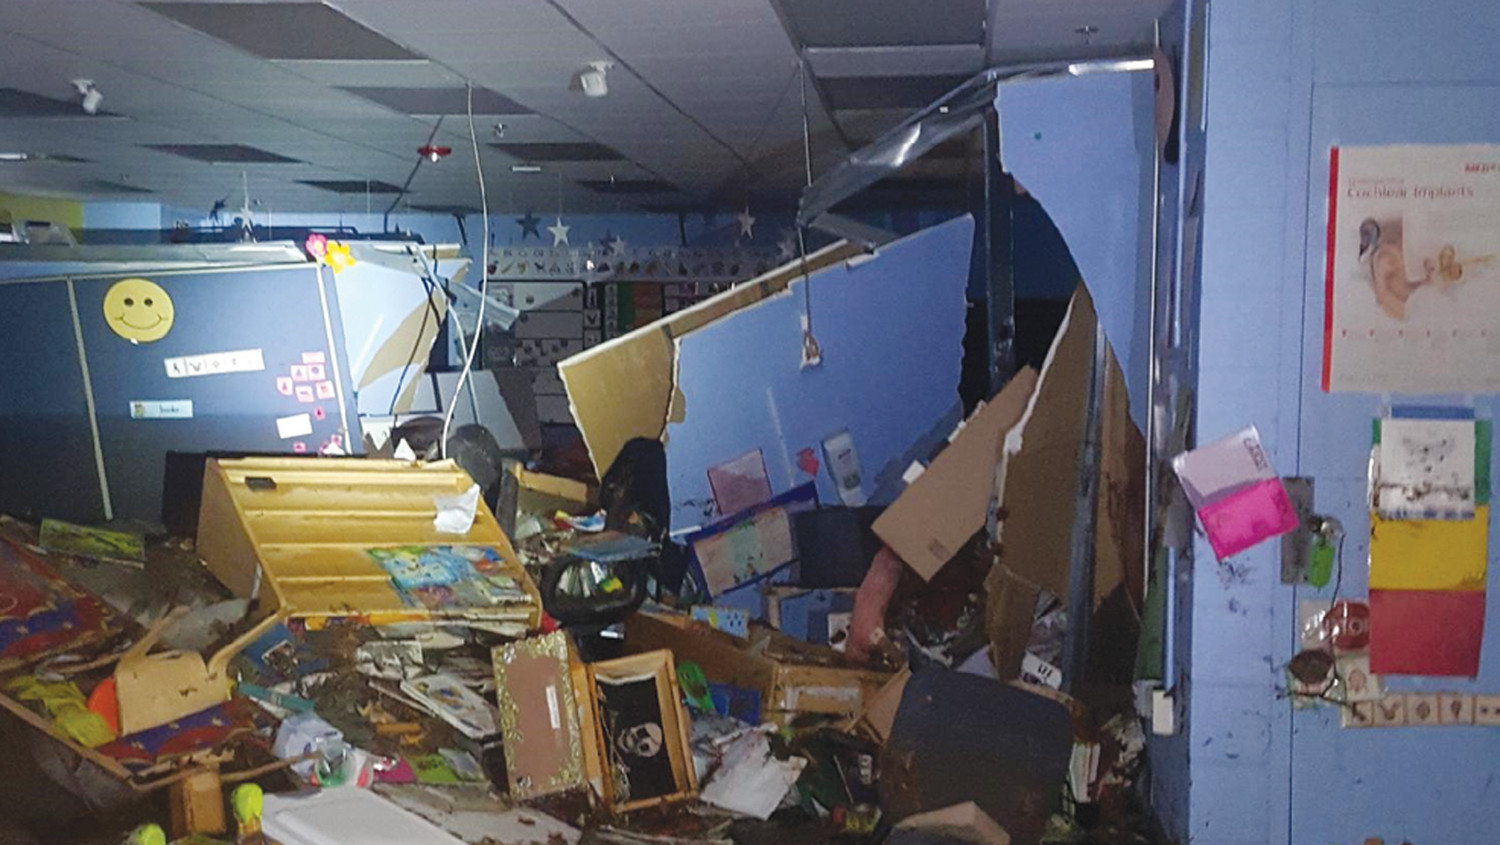 INSIDE LOOK AT THE DAMAGE: The Cranston School Department released this photo of the damage inside one of the classrooms in the basement of Edgewood Highland.